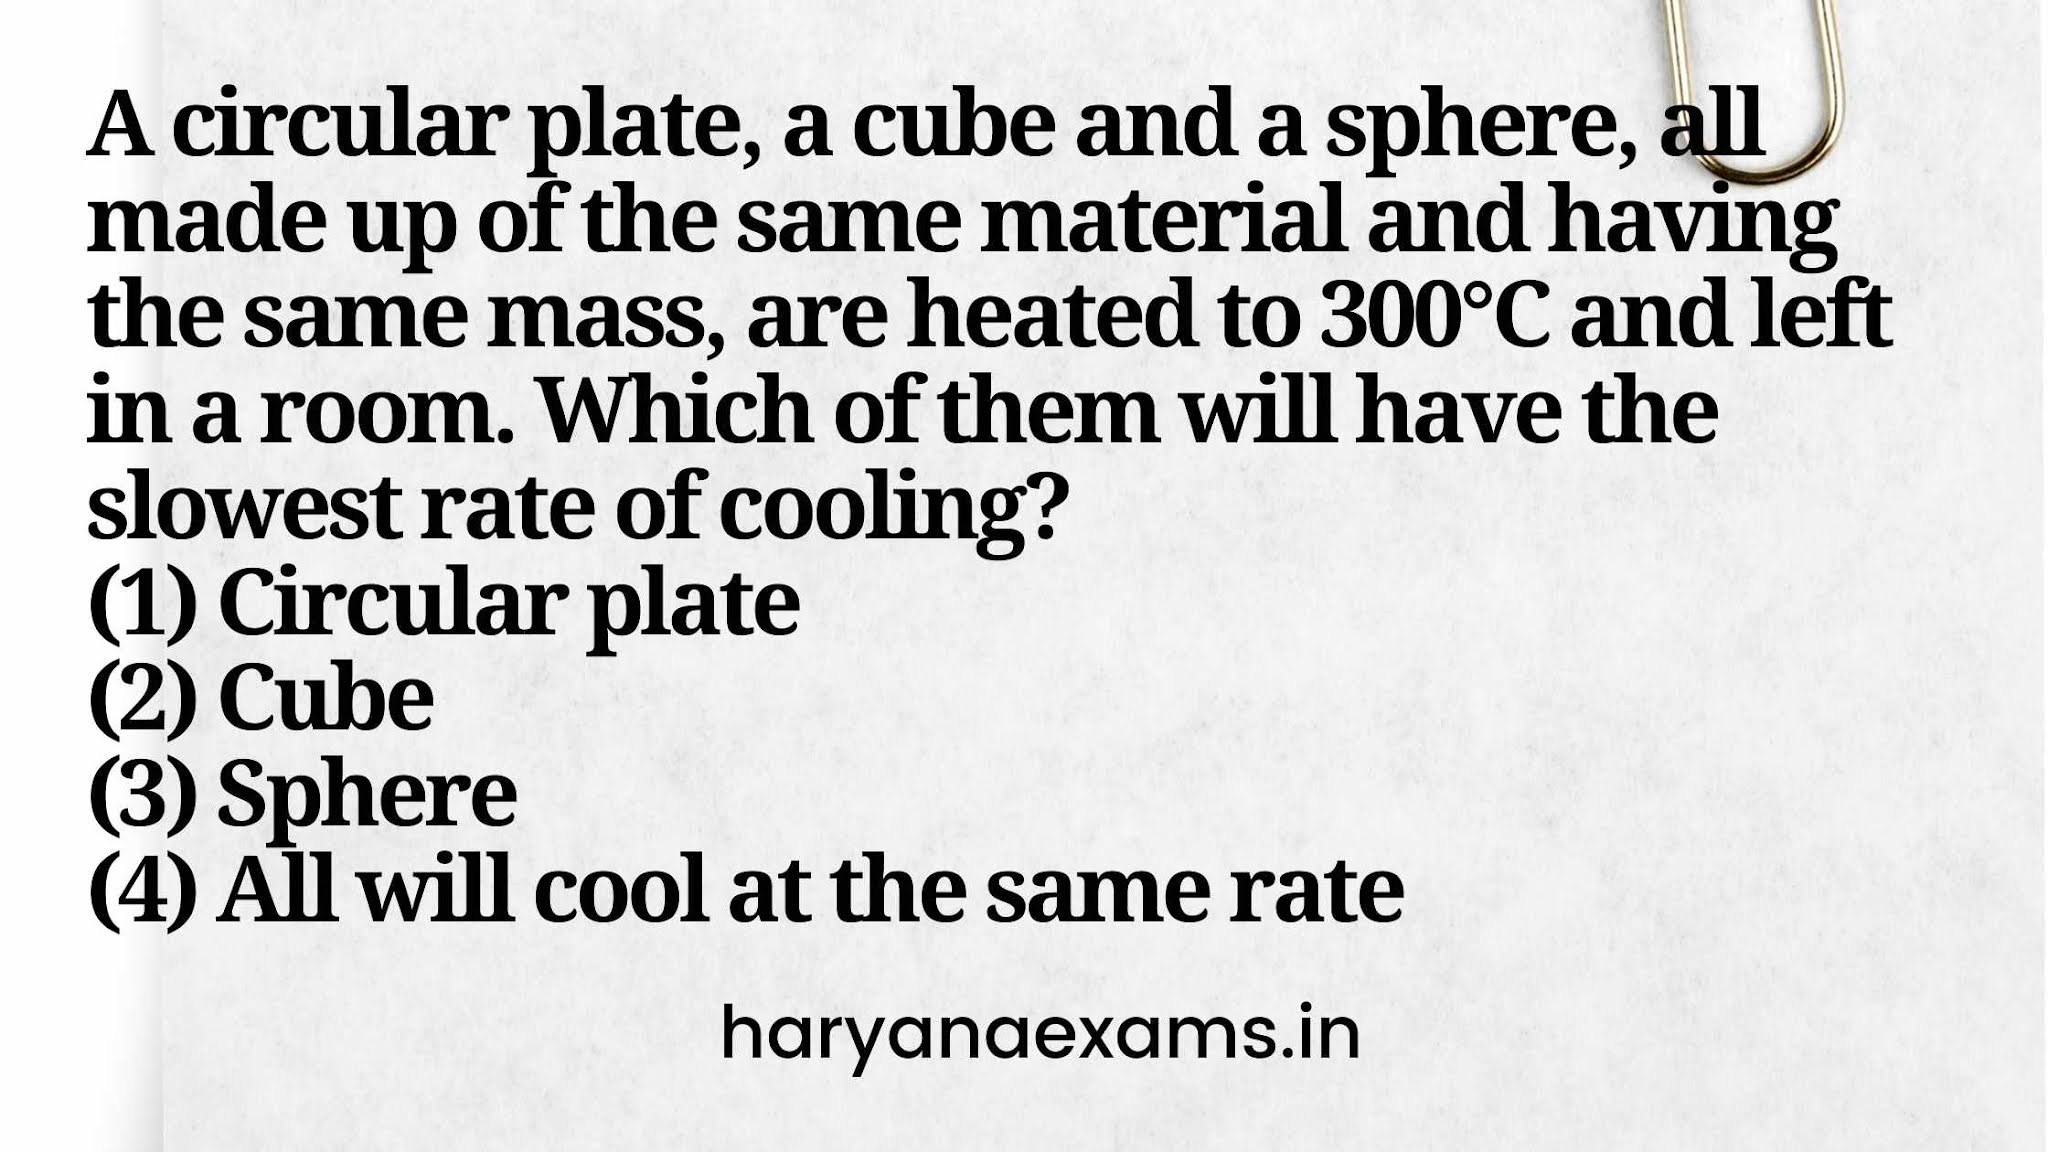 A circular plate, a cube and a sphere, all made up of the same material and having the same mass, are heated to 300°C and left in a room. Which of them will have the slowest rate of cooling?   (1) Circular plate   (2) Cube   (3) Sphere   (4) All will cool at the same rate